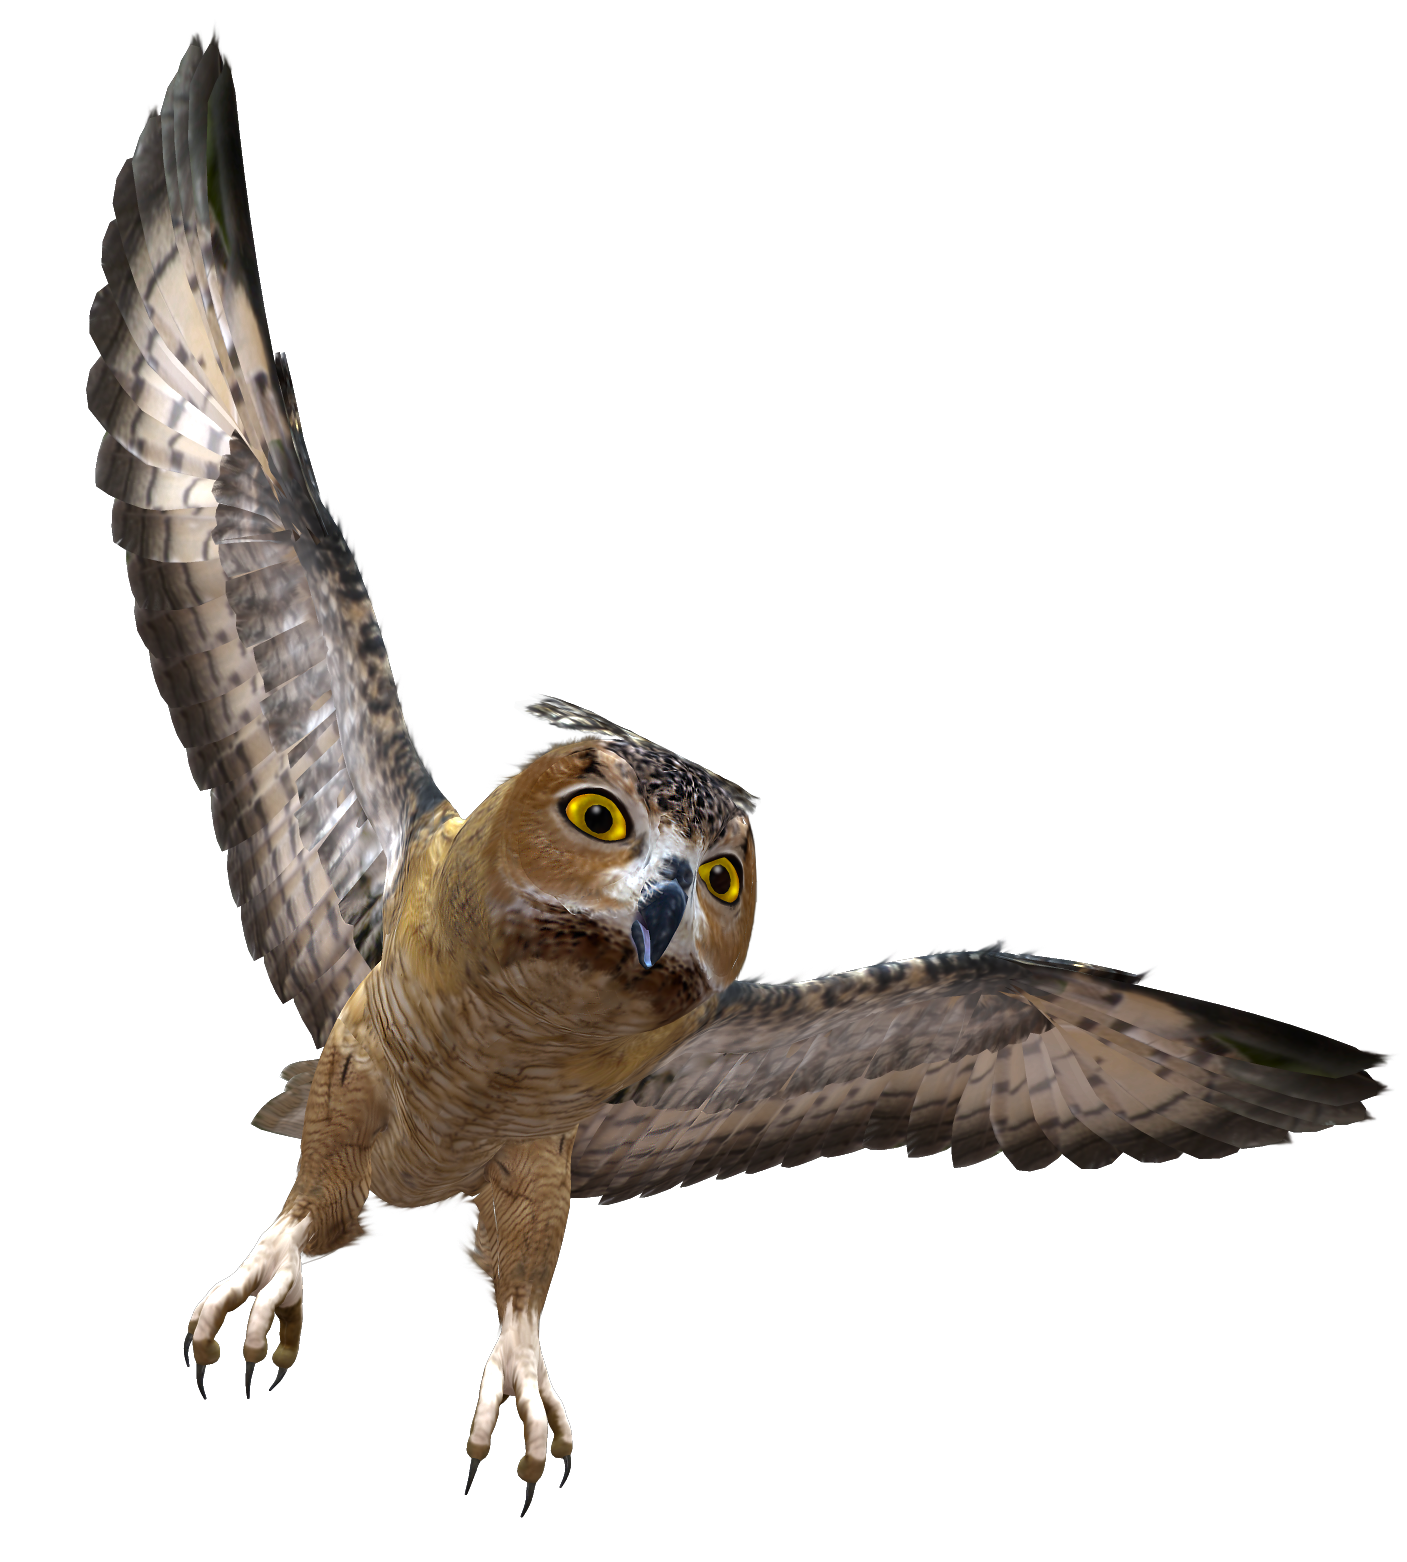 Owl in flight png. Flying clipart vaction